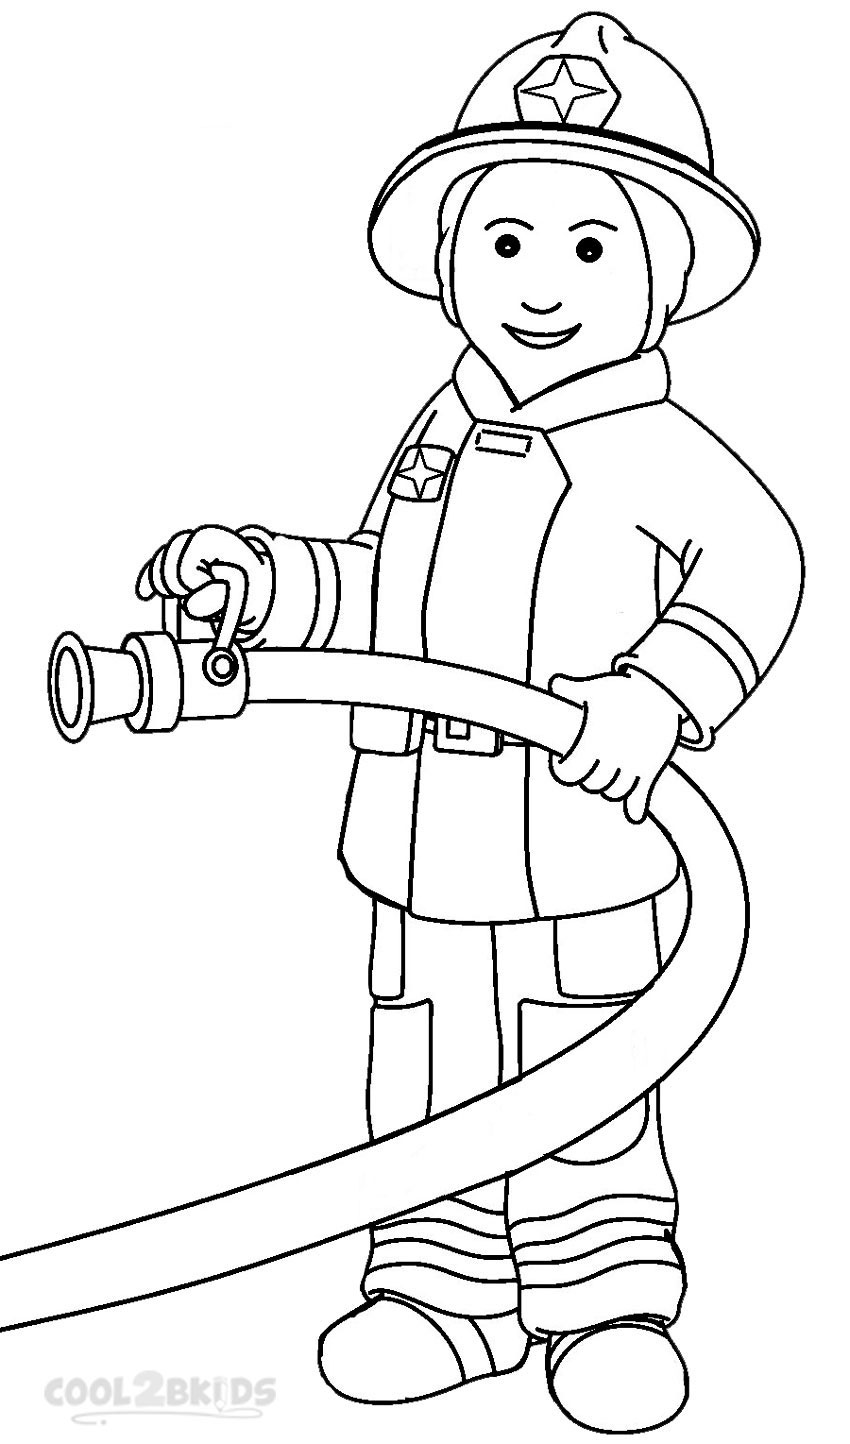 free coloring coloring pages - photo#18